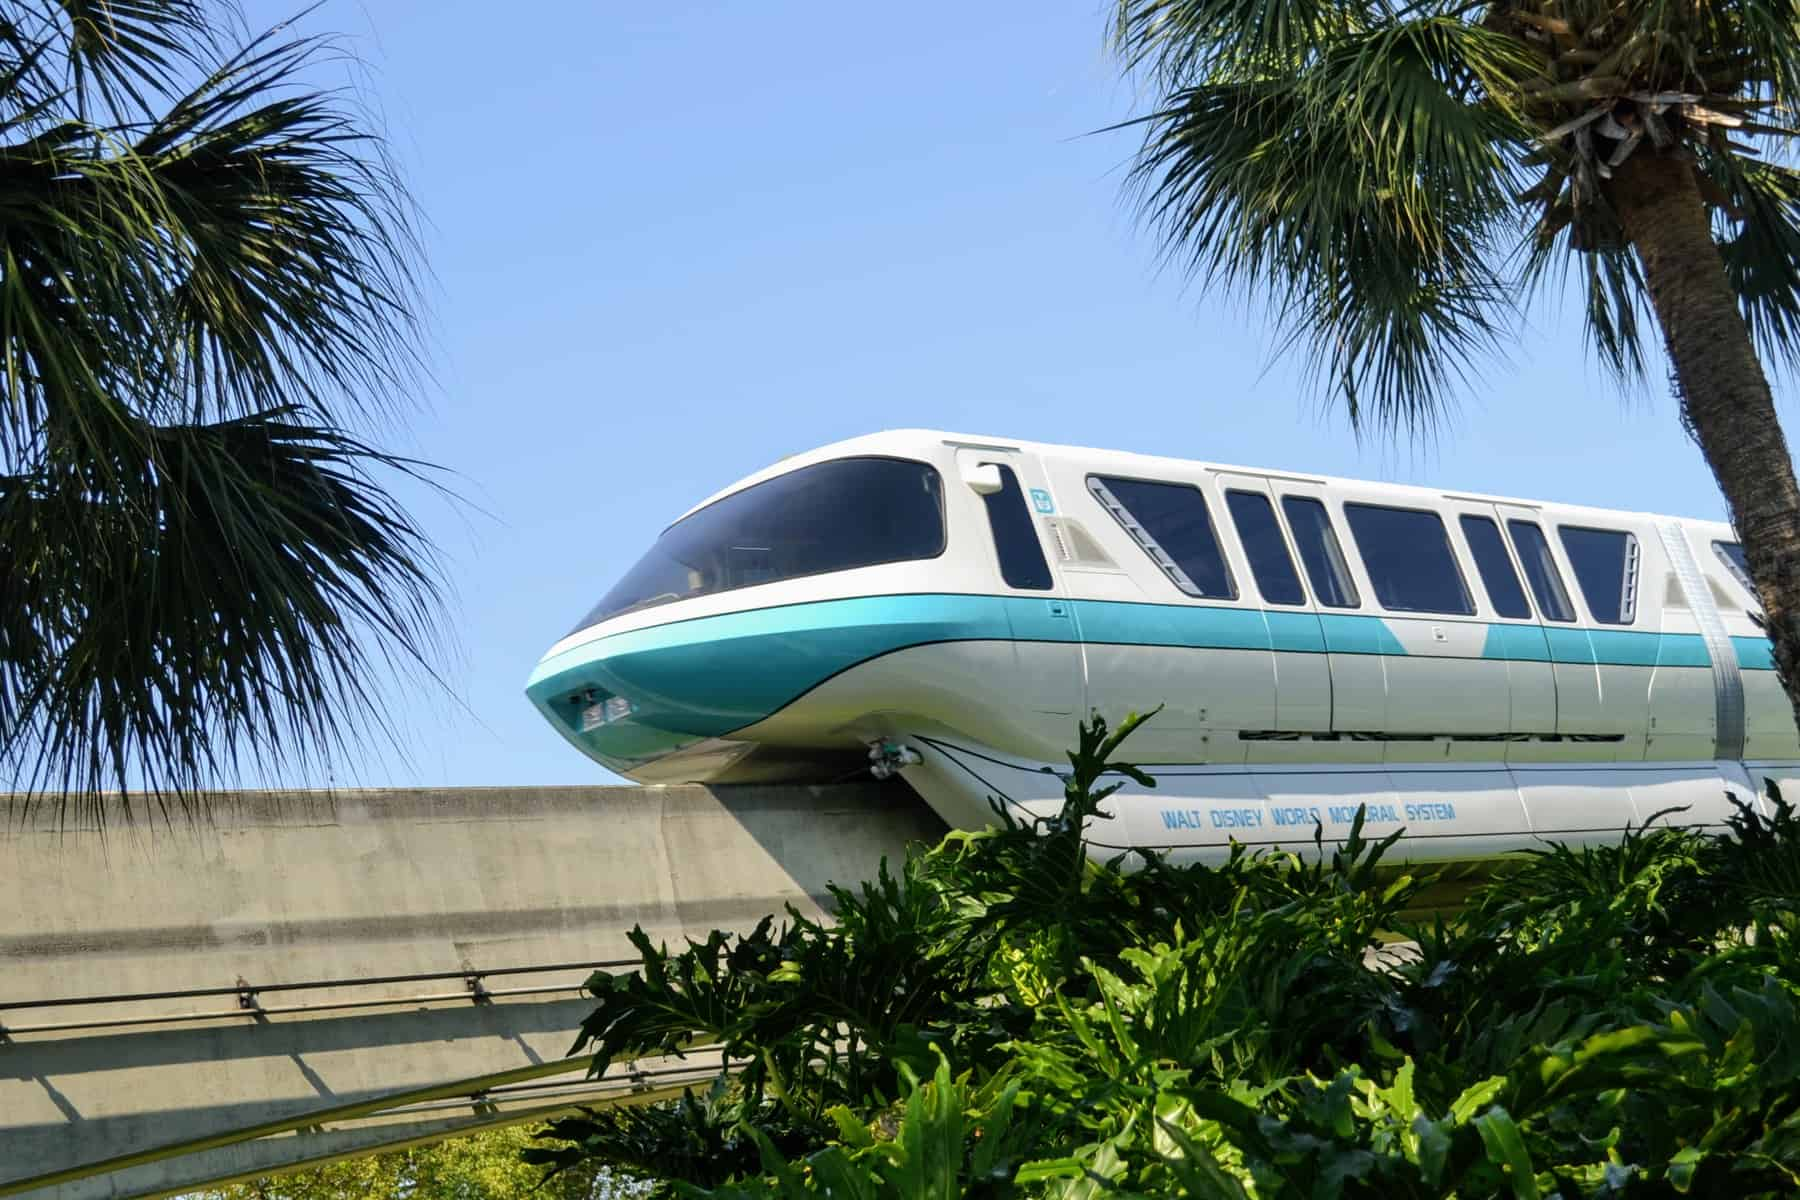 Resort Monorail